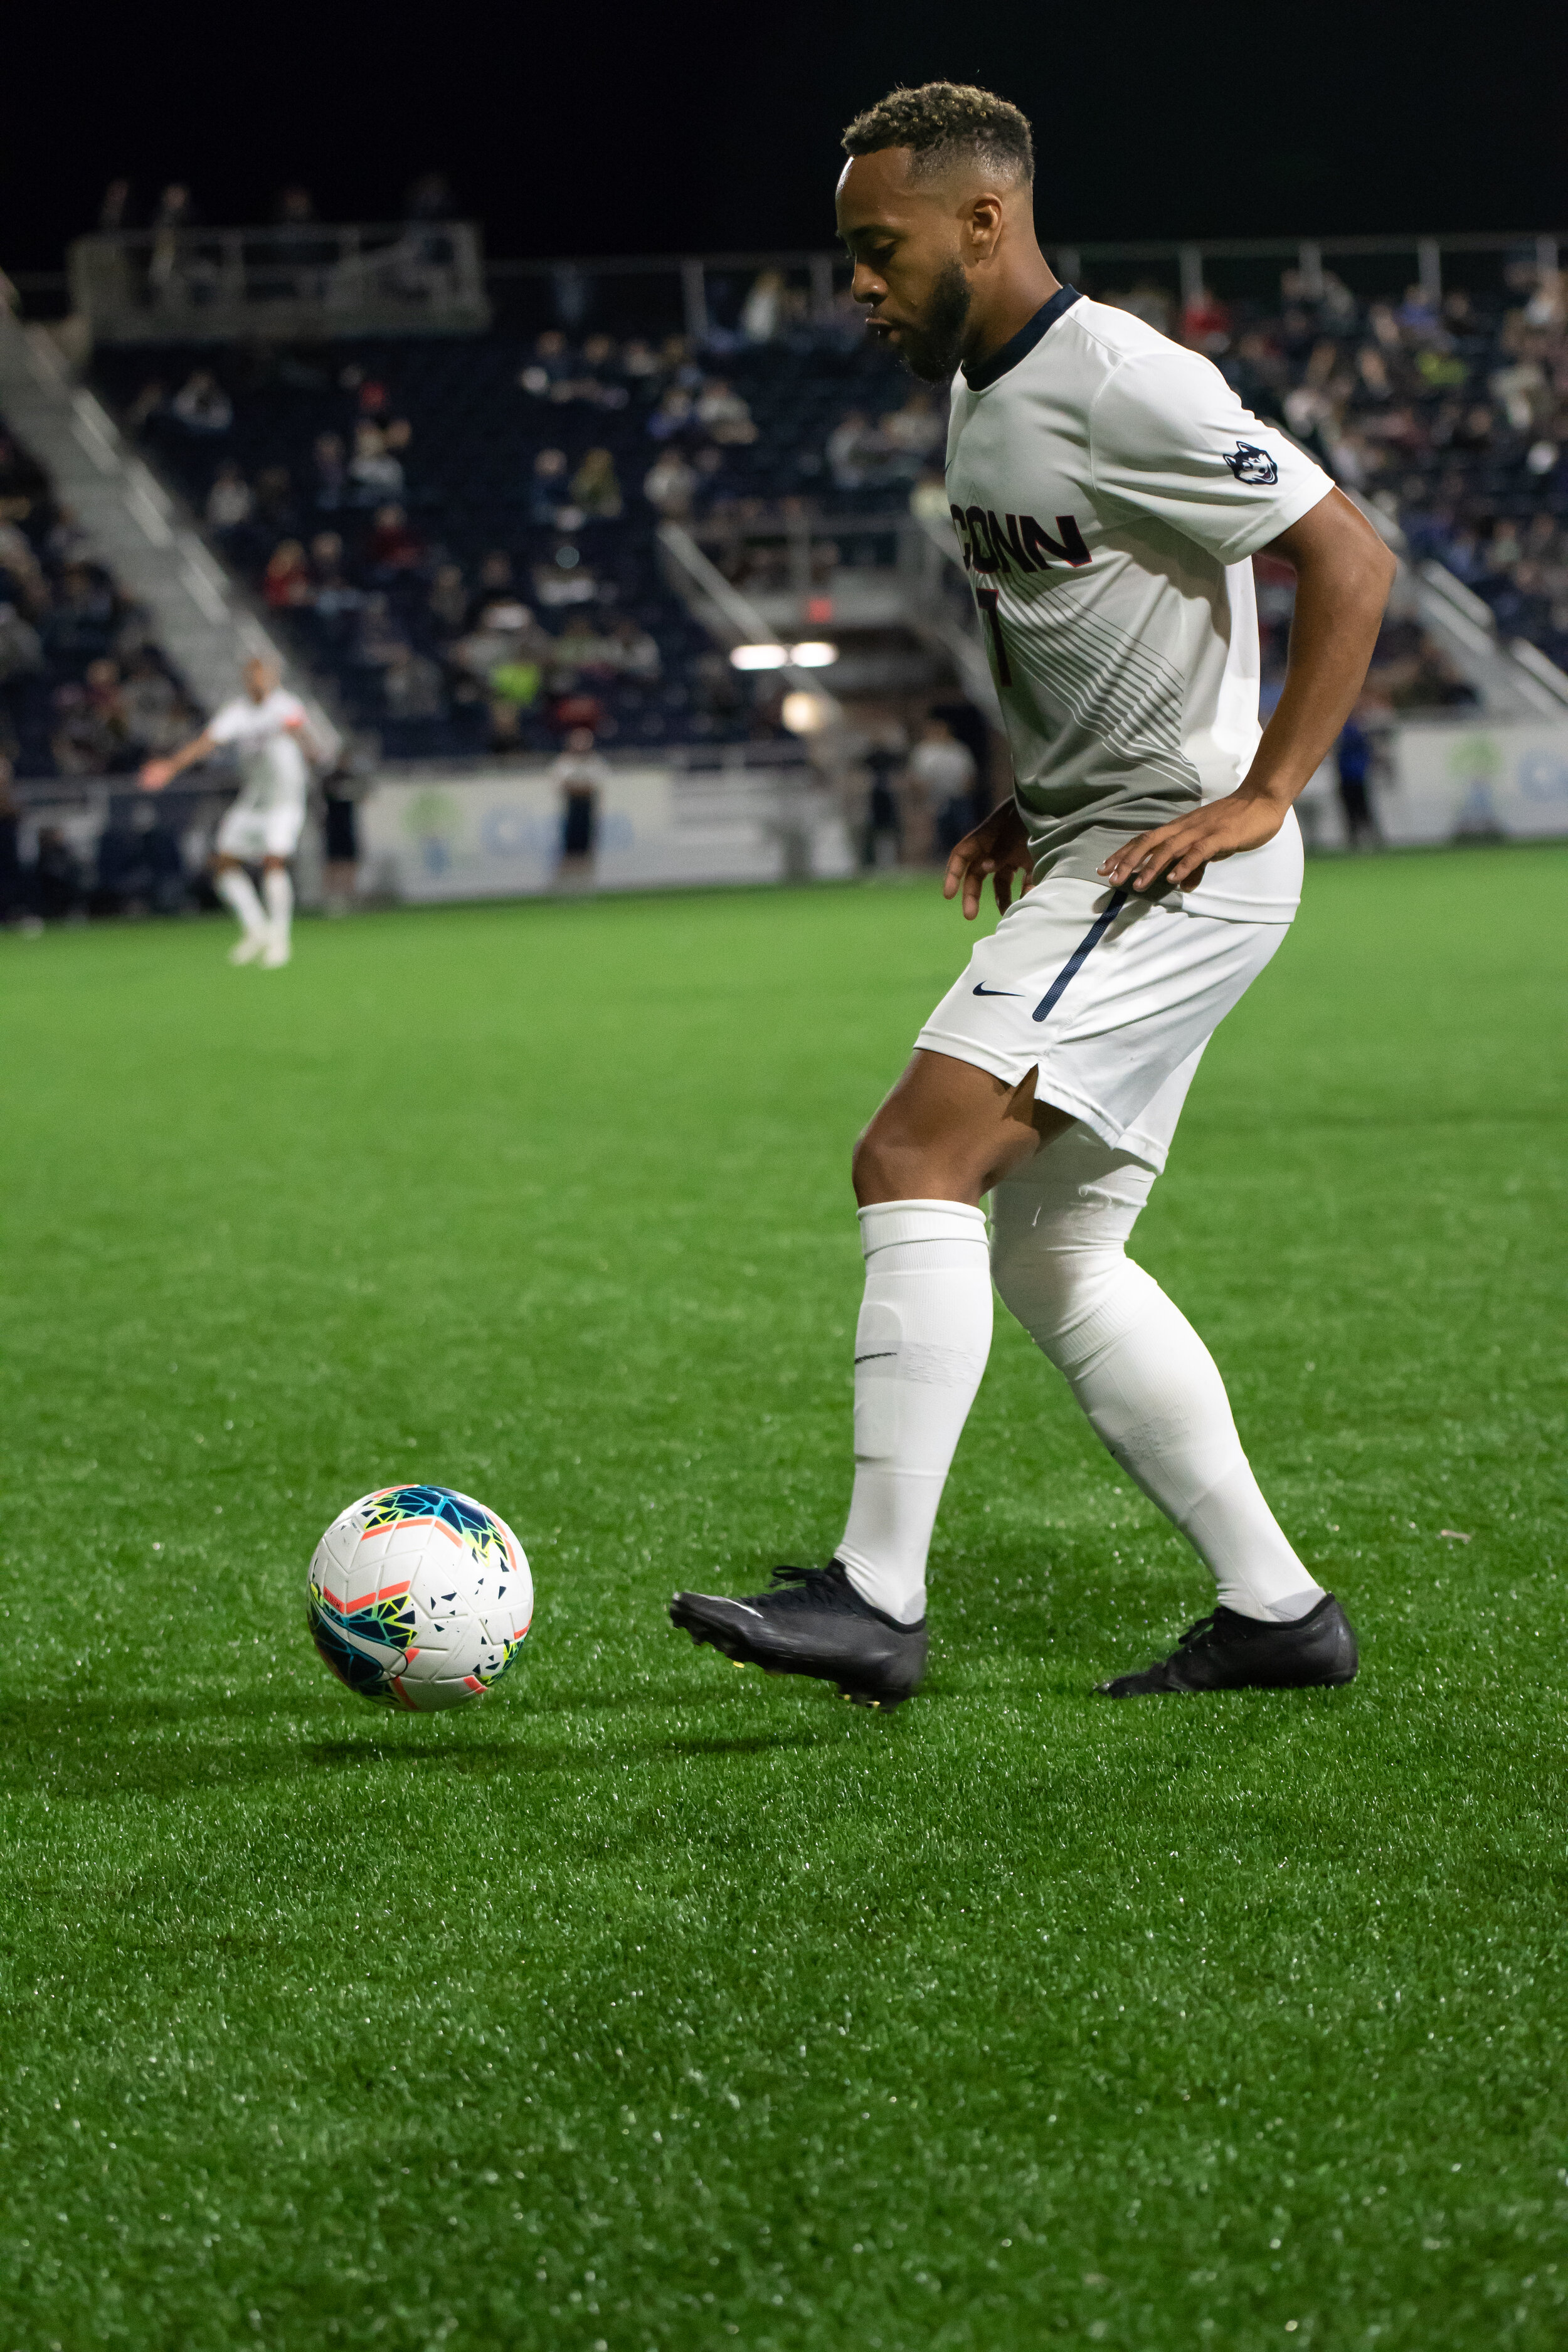 The UConn men's soccer team has yet to win a game with leading goal-scorer Jordan Hall, their next chance to do so will come against Cincinnati this weekend.  Photo by Kevin Lindstrom / The Daily Campus.